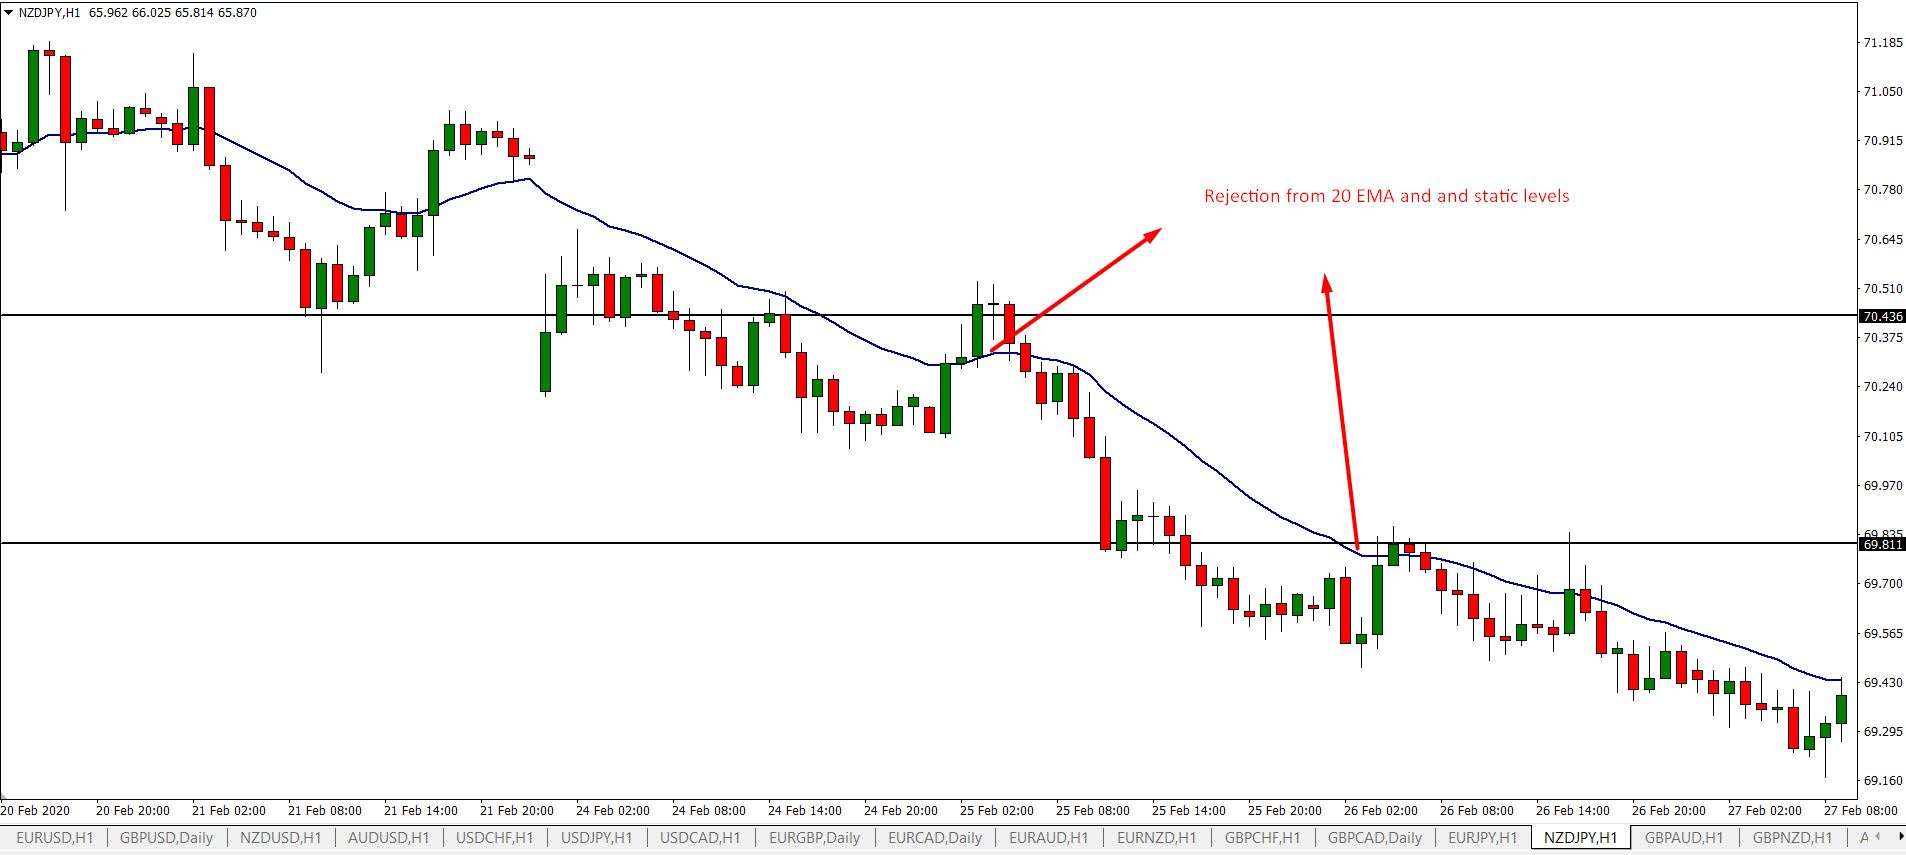 Identify trend using moving averages